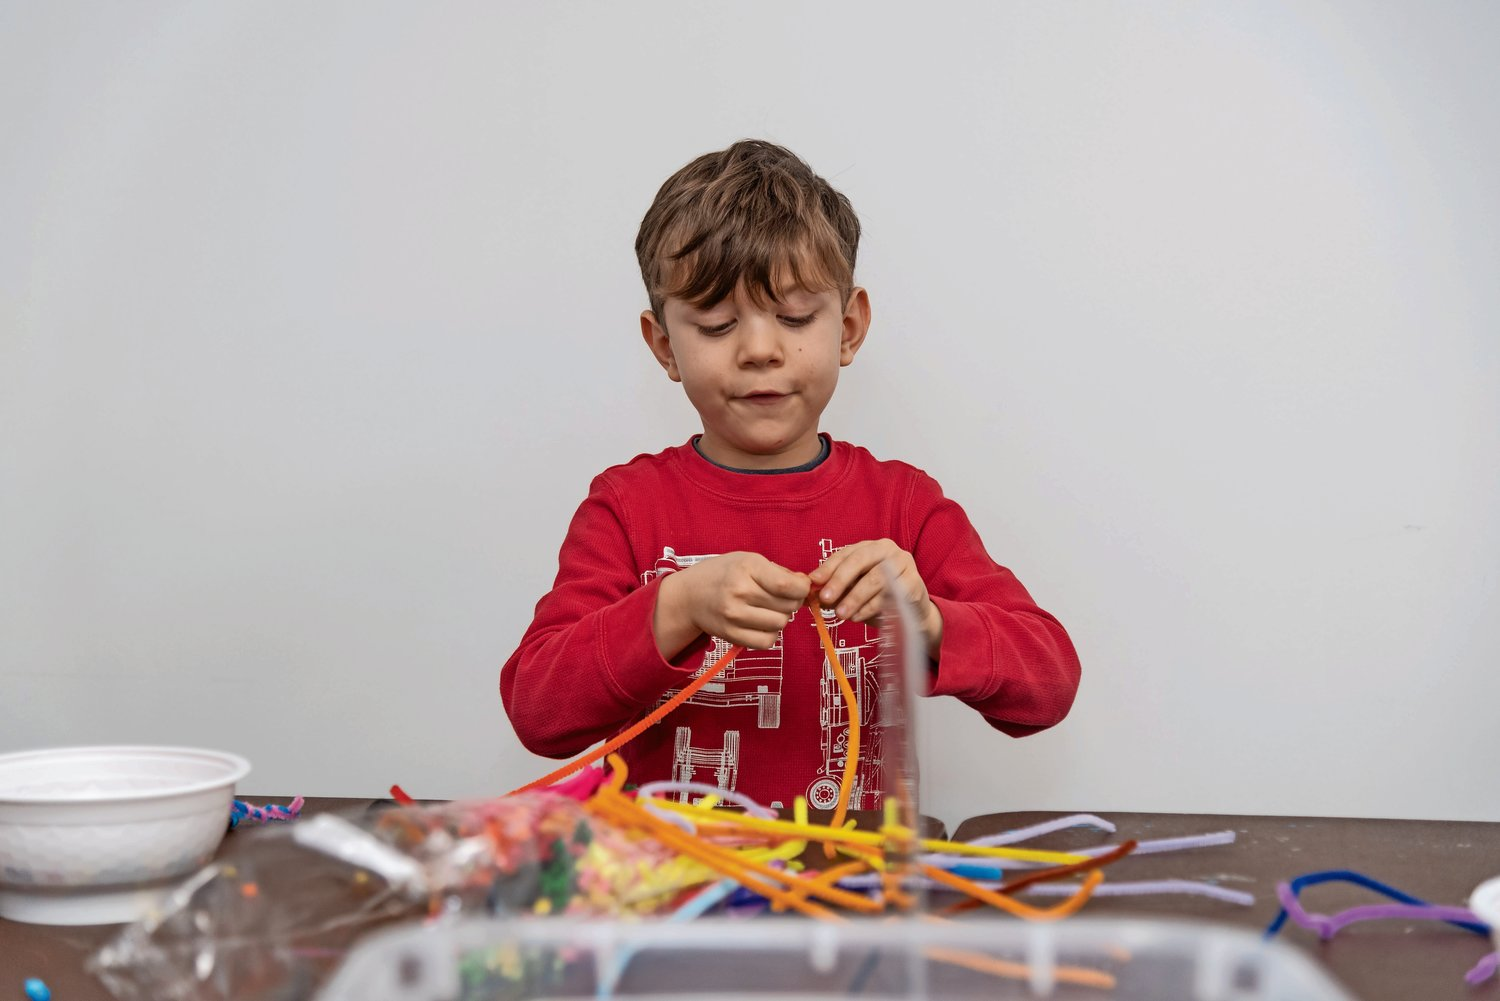 Rees Capogna, 5, learned the basics of coding and essential STEAM skills at an interactive children's workshop at the Gold Coast Library in Glen Head on Feb. 14.